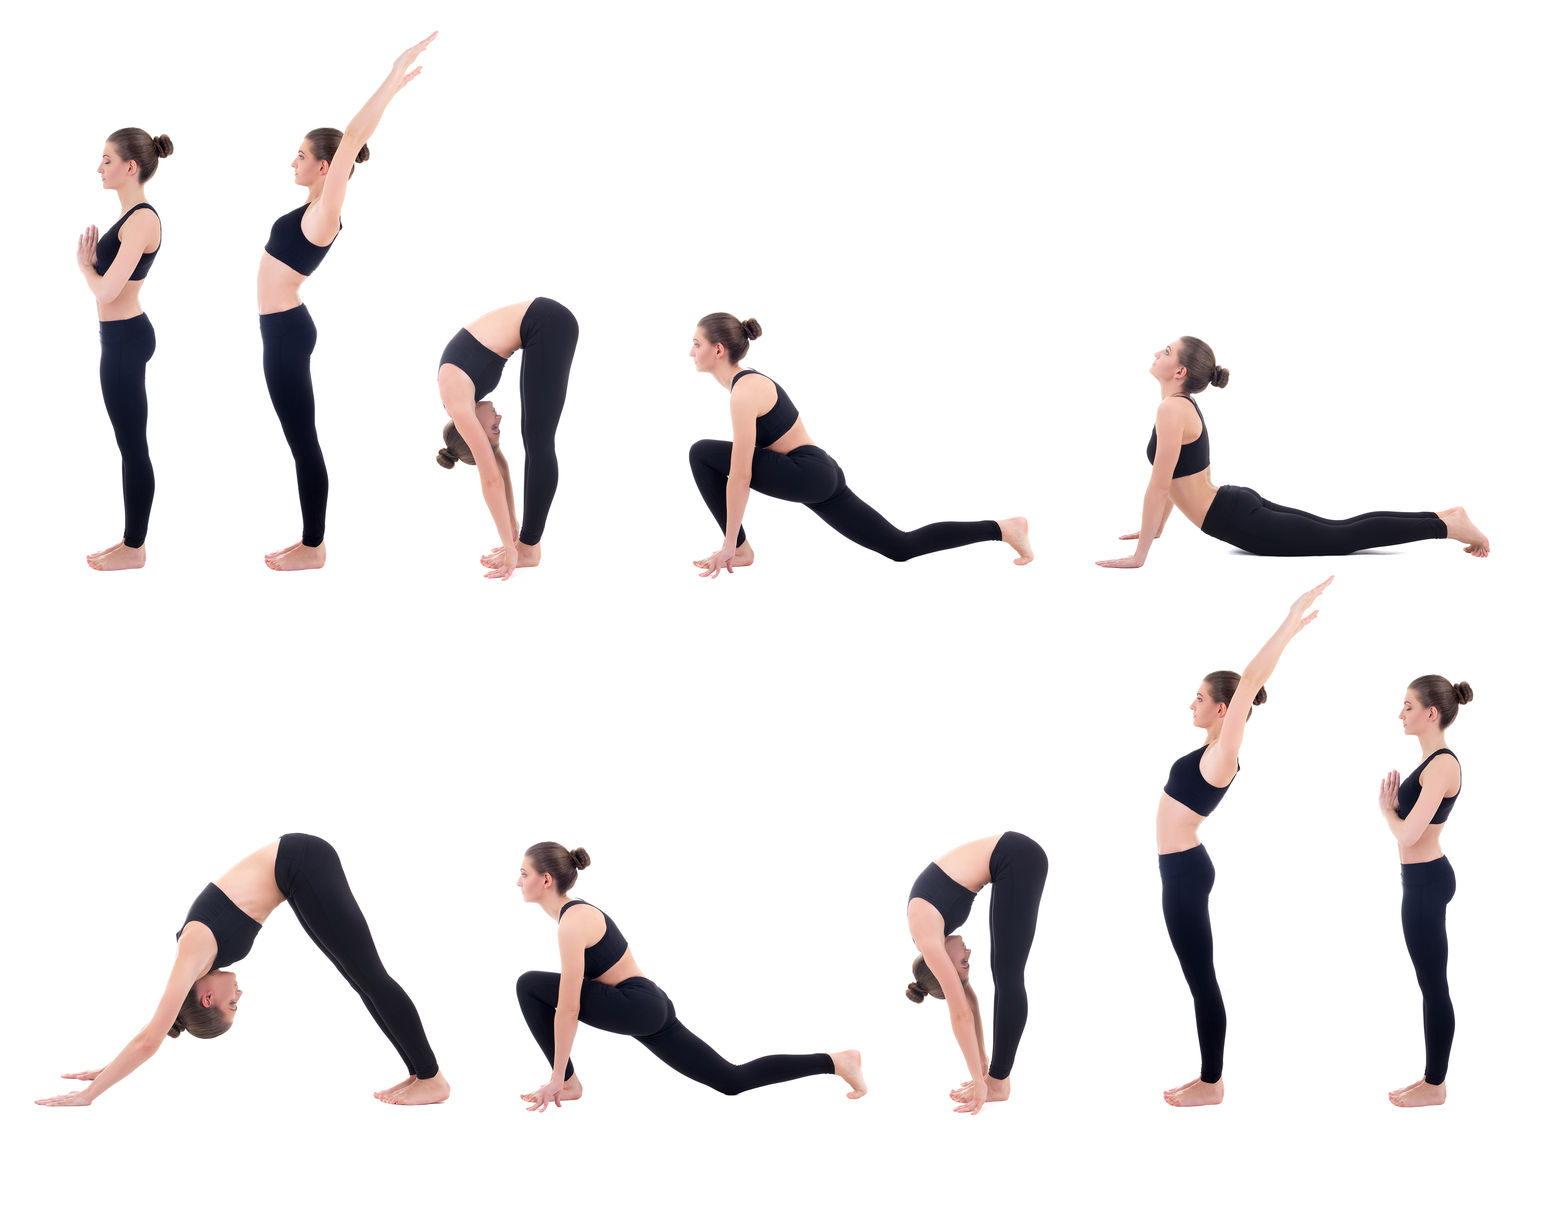 42654835 - beautiful slim woman in yoga sun salutation sequence poses isolated on white background